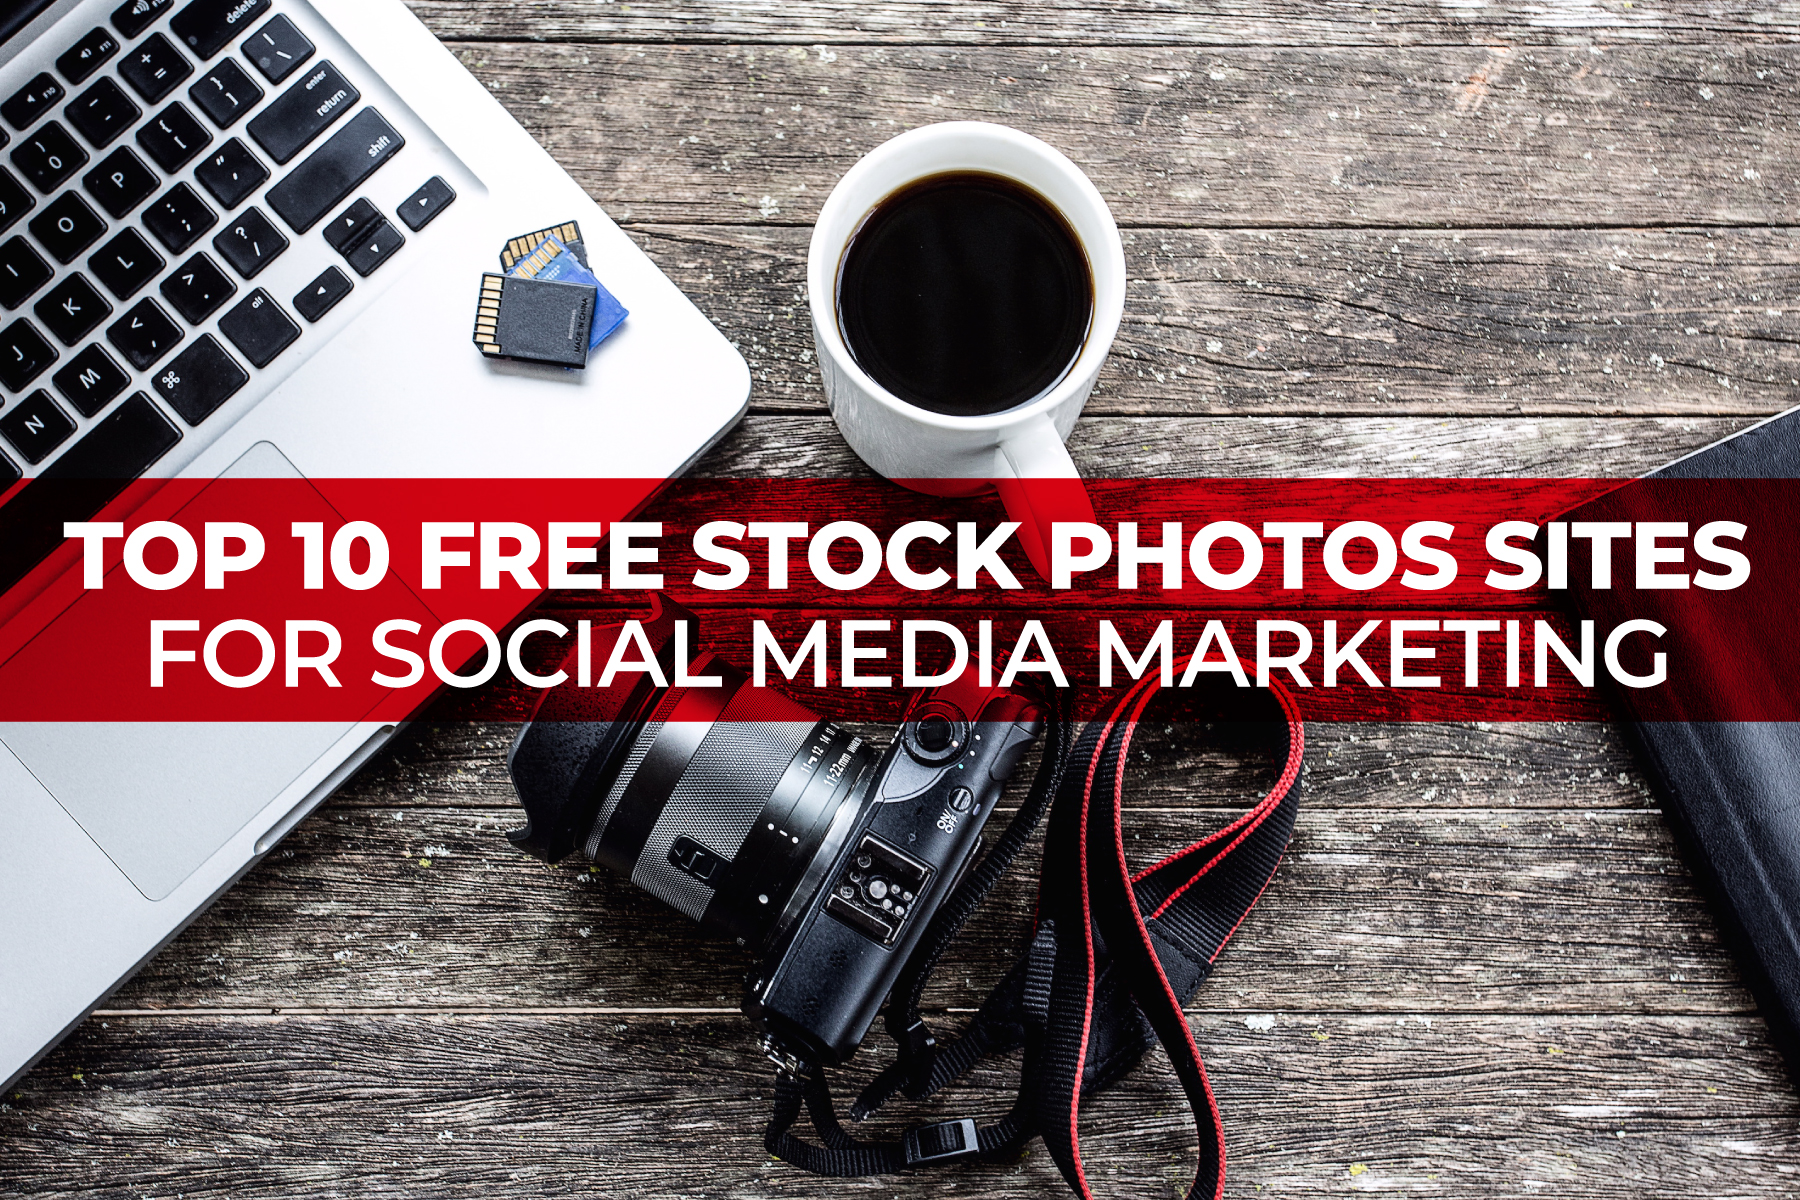 Top 10 Free Stock Photos Sites for Social Media Marketing